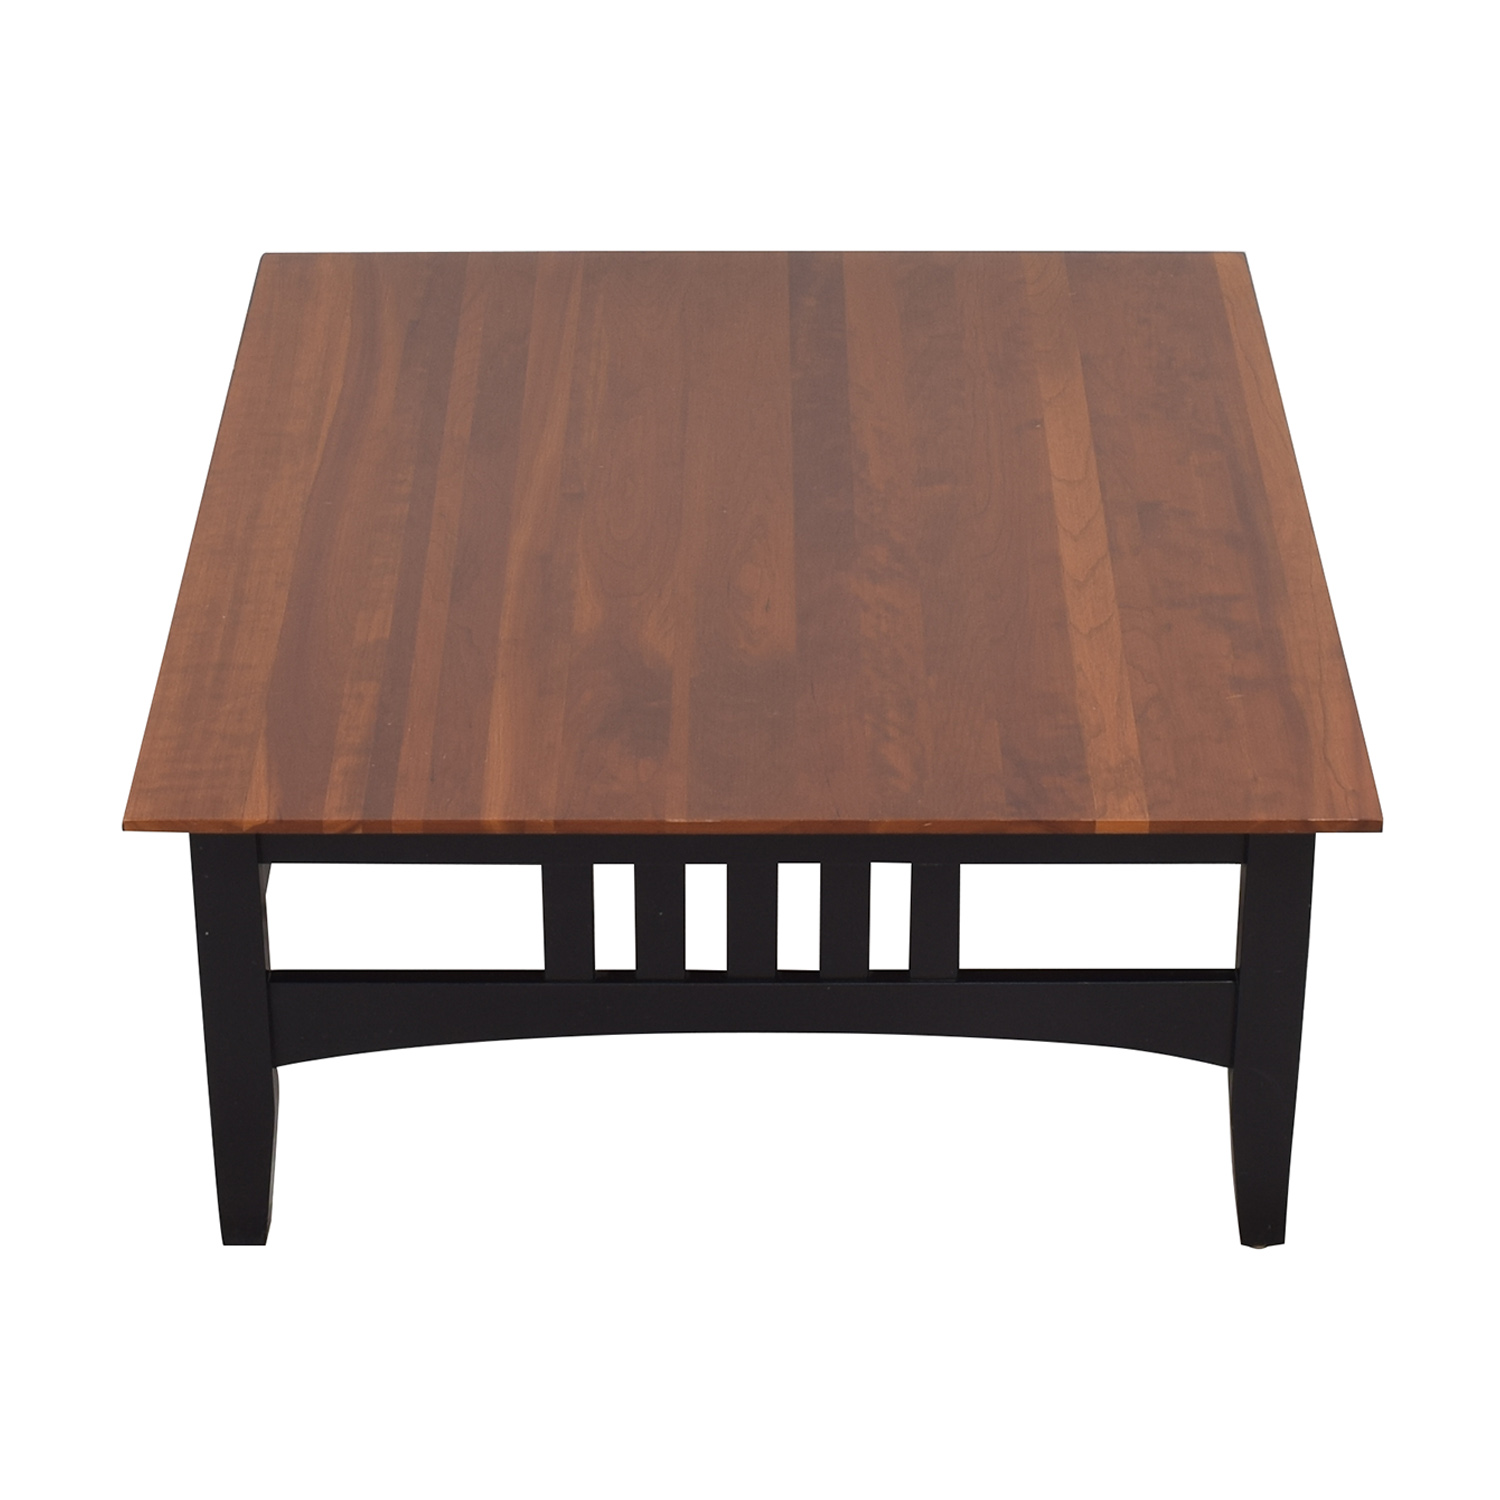 Ethan Allen American Impressions Coffee Table / Coffee Tables